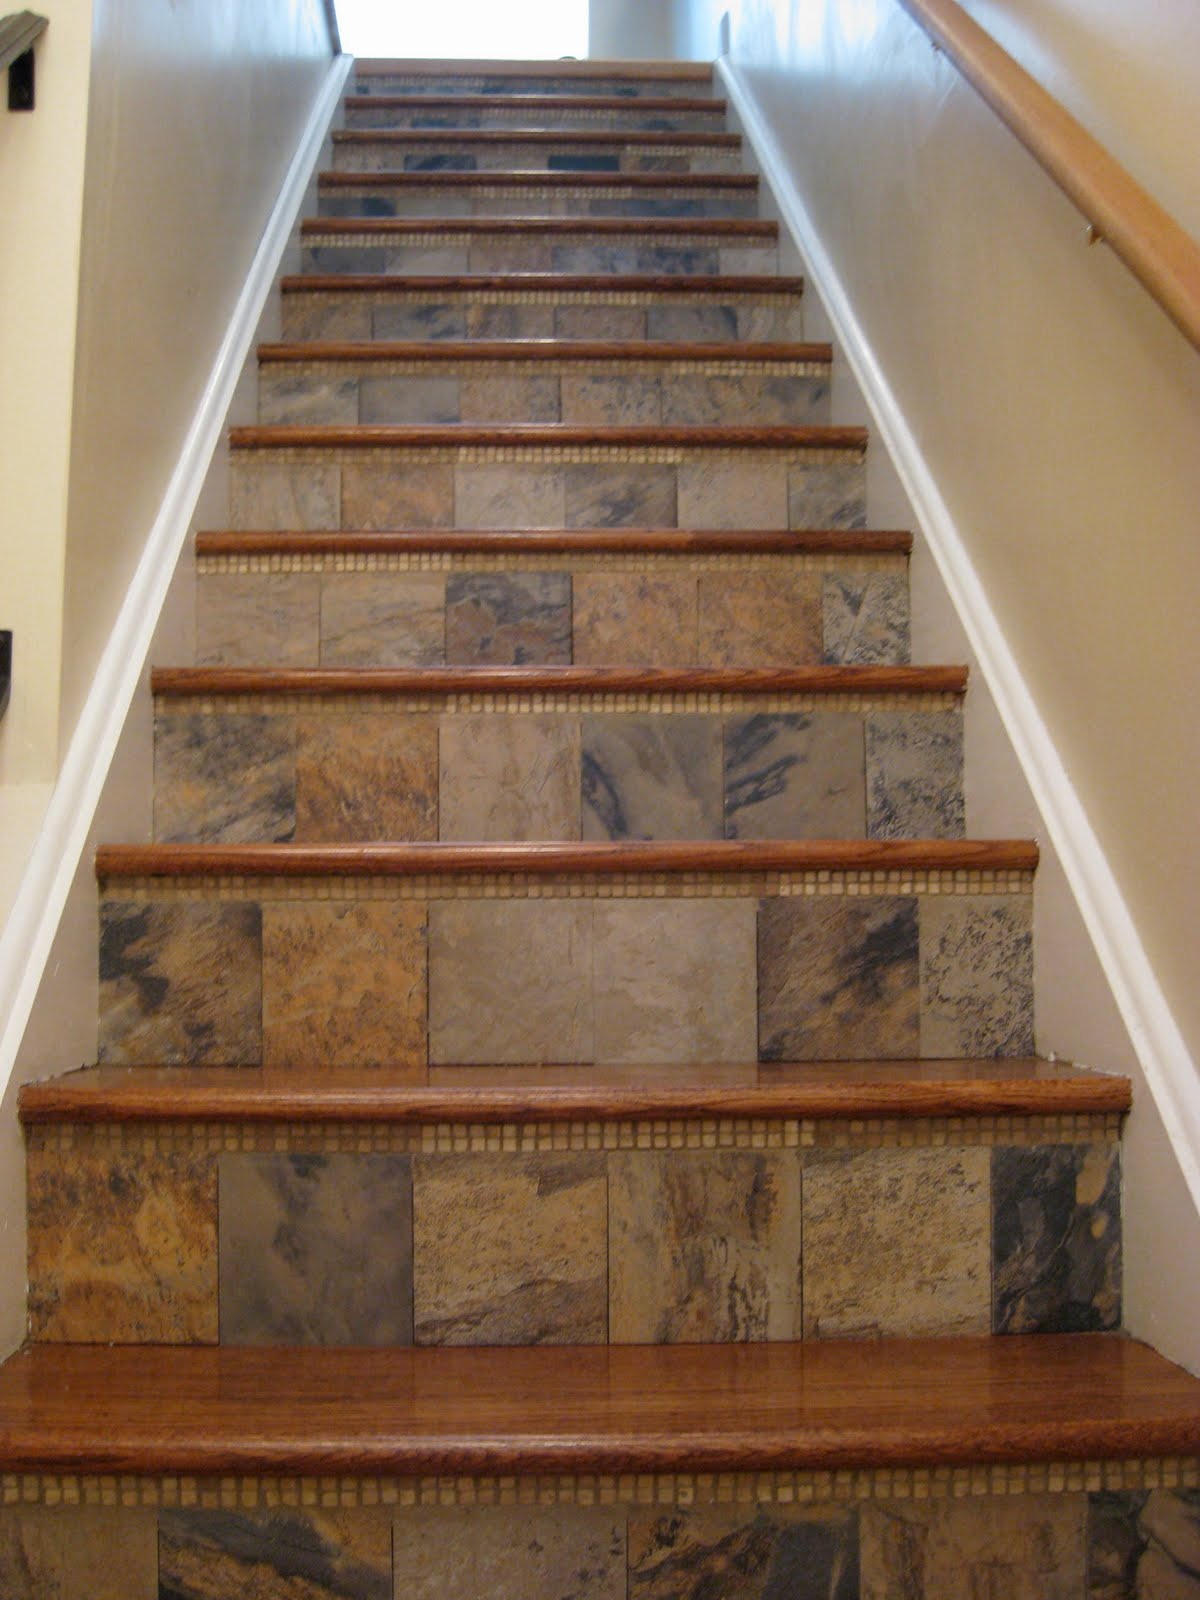 H.Winter Showroom Blog: Make a statement with your stairs!